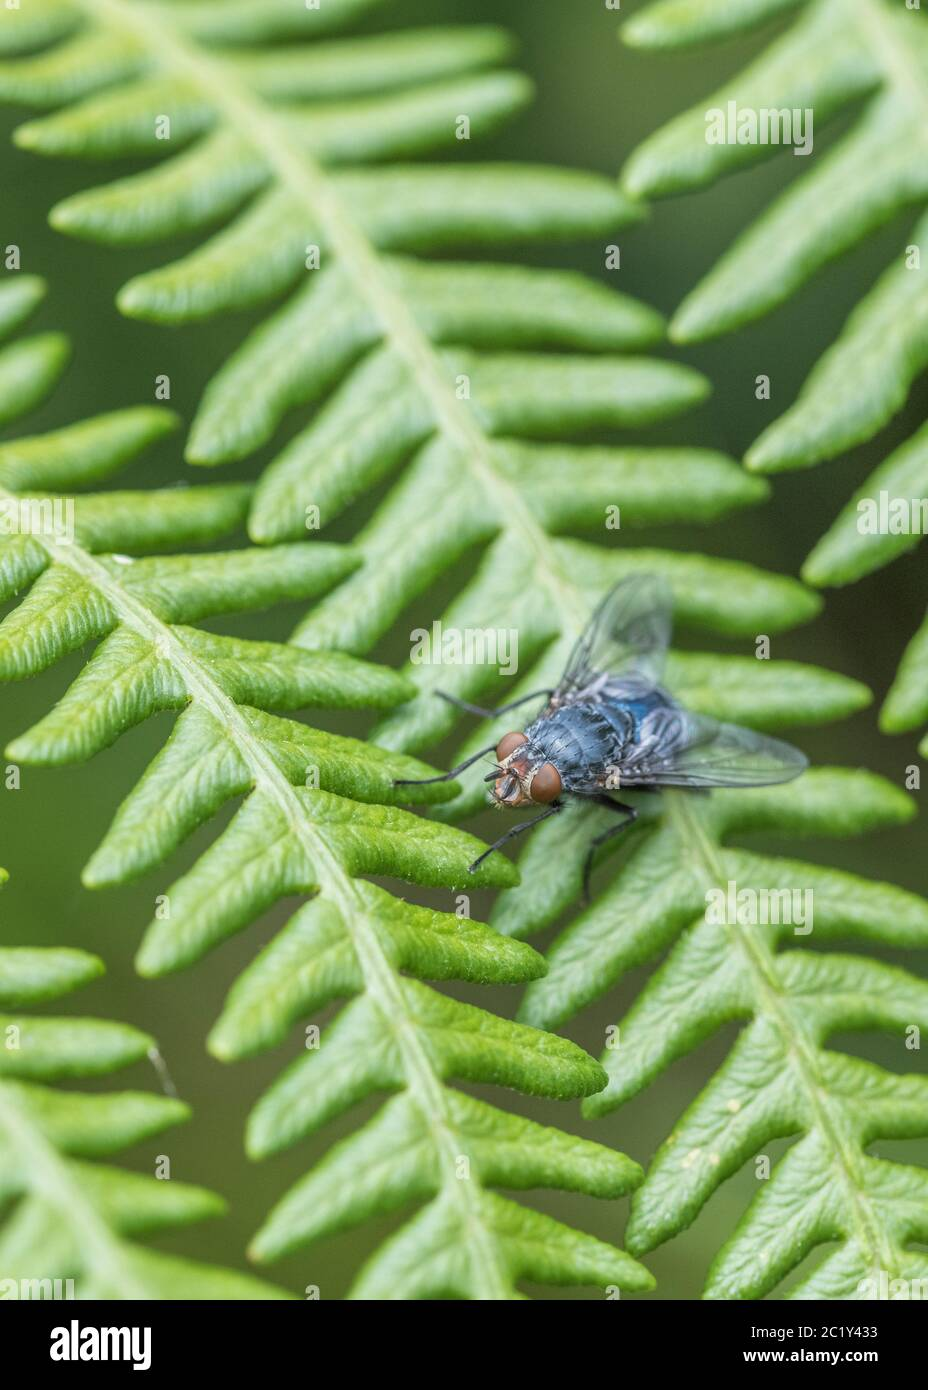 Close-shot of what is possibly common Blue Bottle / Calliphora vicina on fern leaf frond, but might be Pales pavida. Fly close up, close-up shot fly. Stock Photo